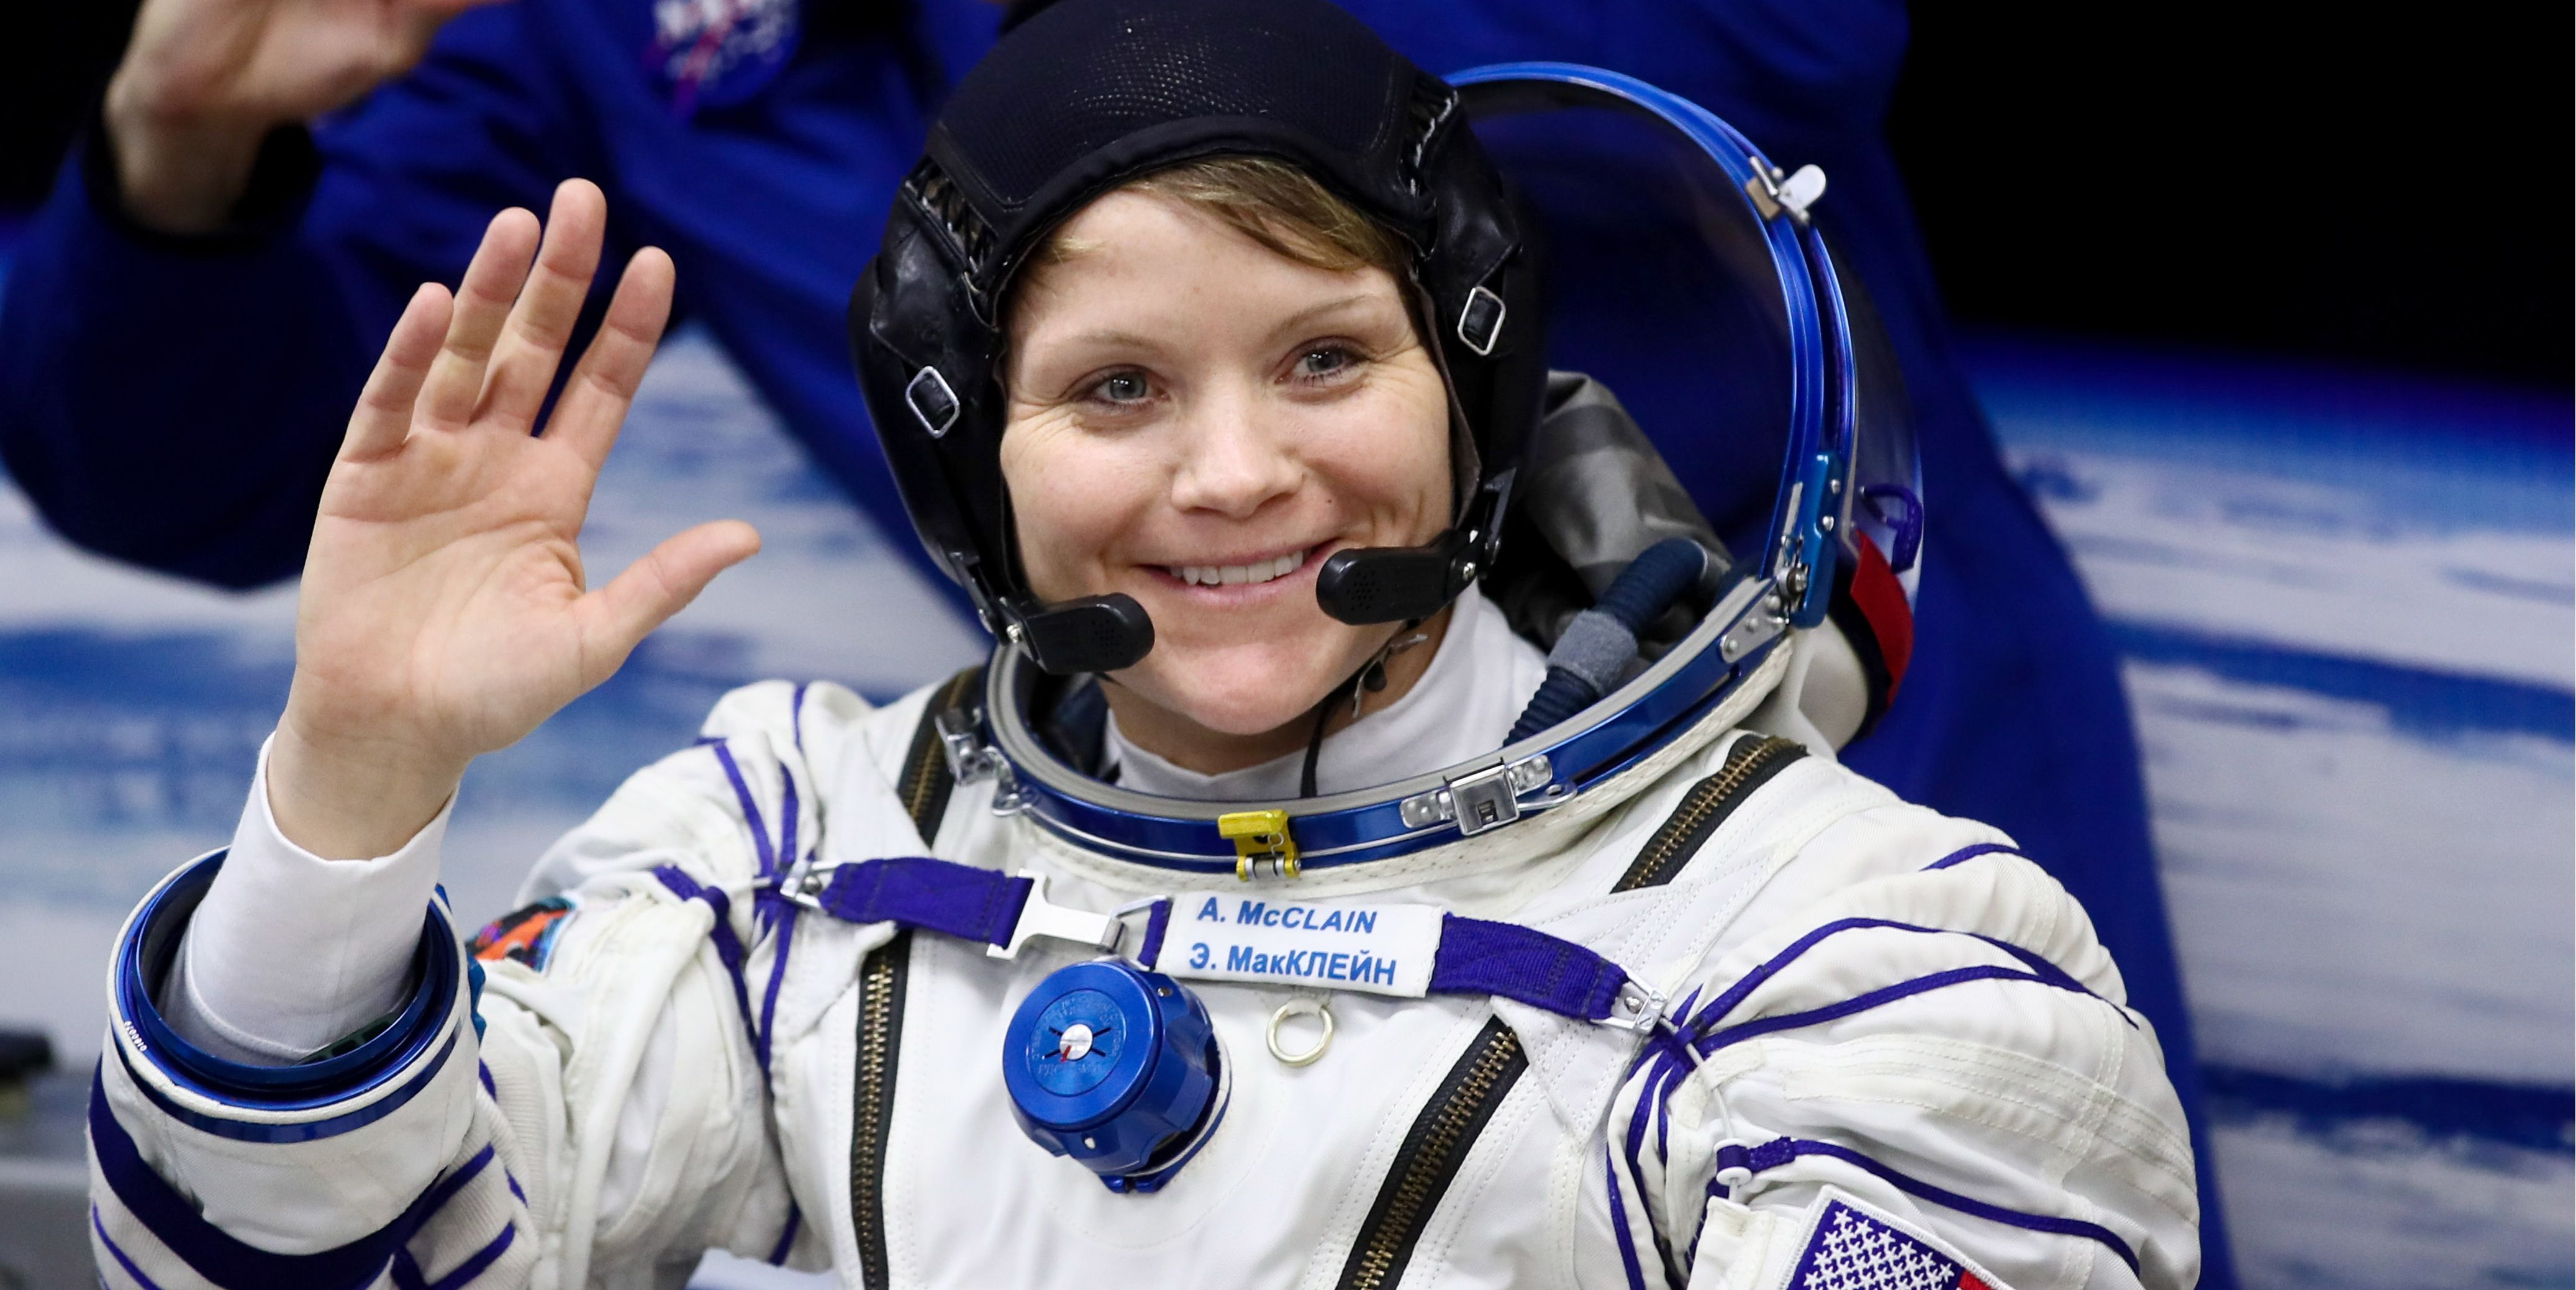 Expedition 58/59 main crew prepares for launch at Baikonur Cosmodrome